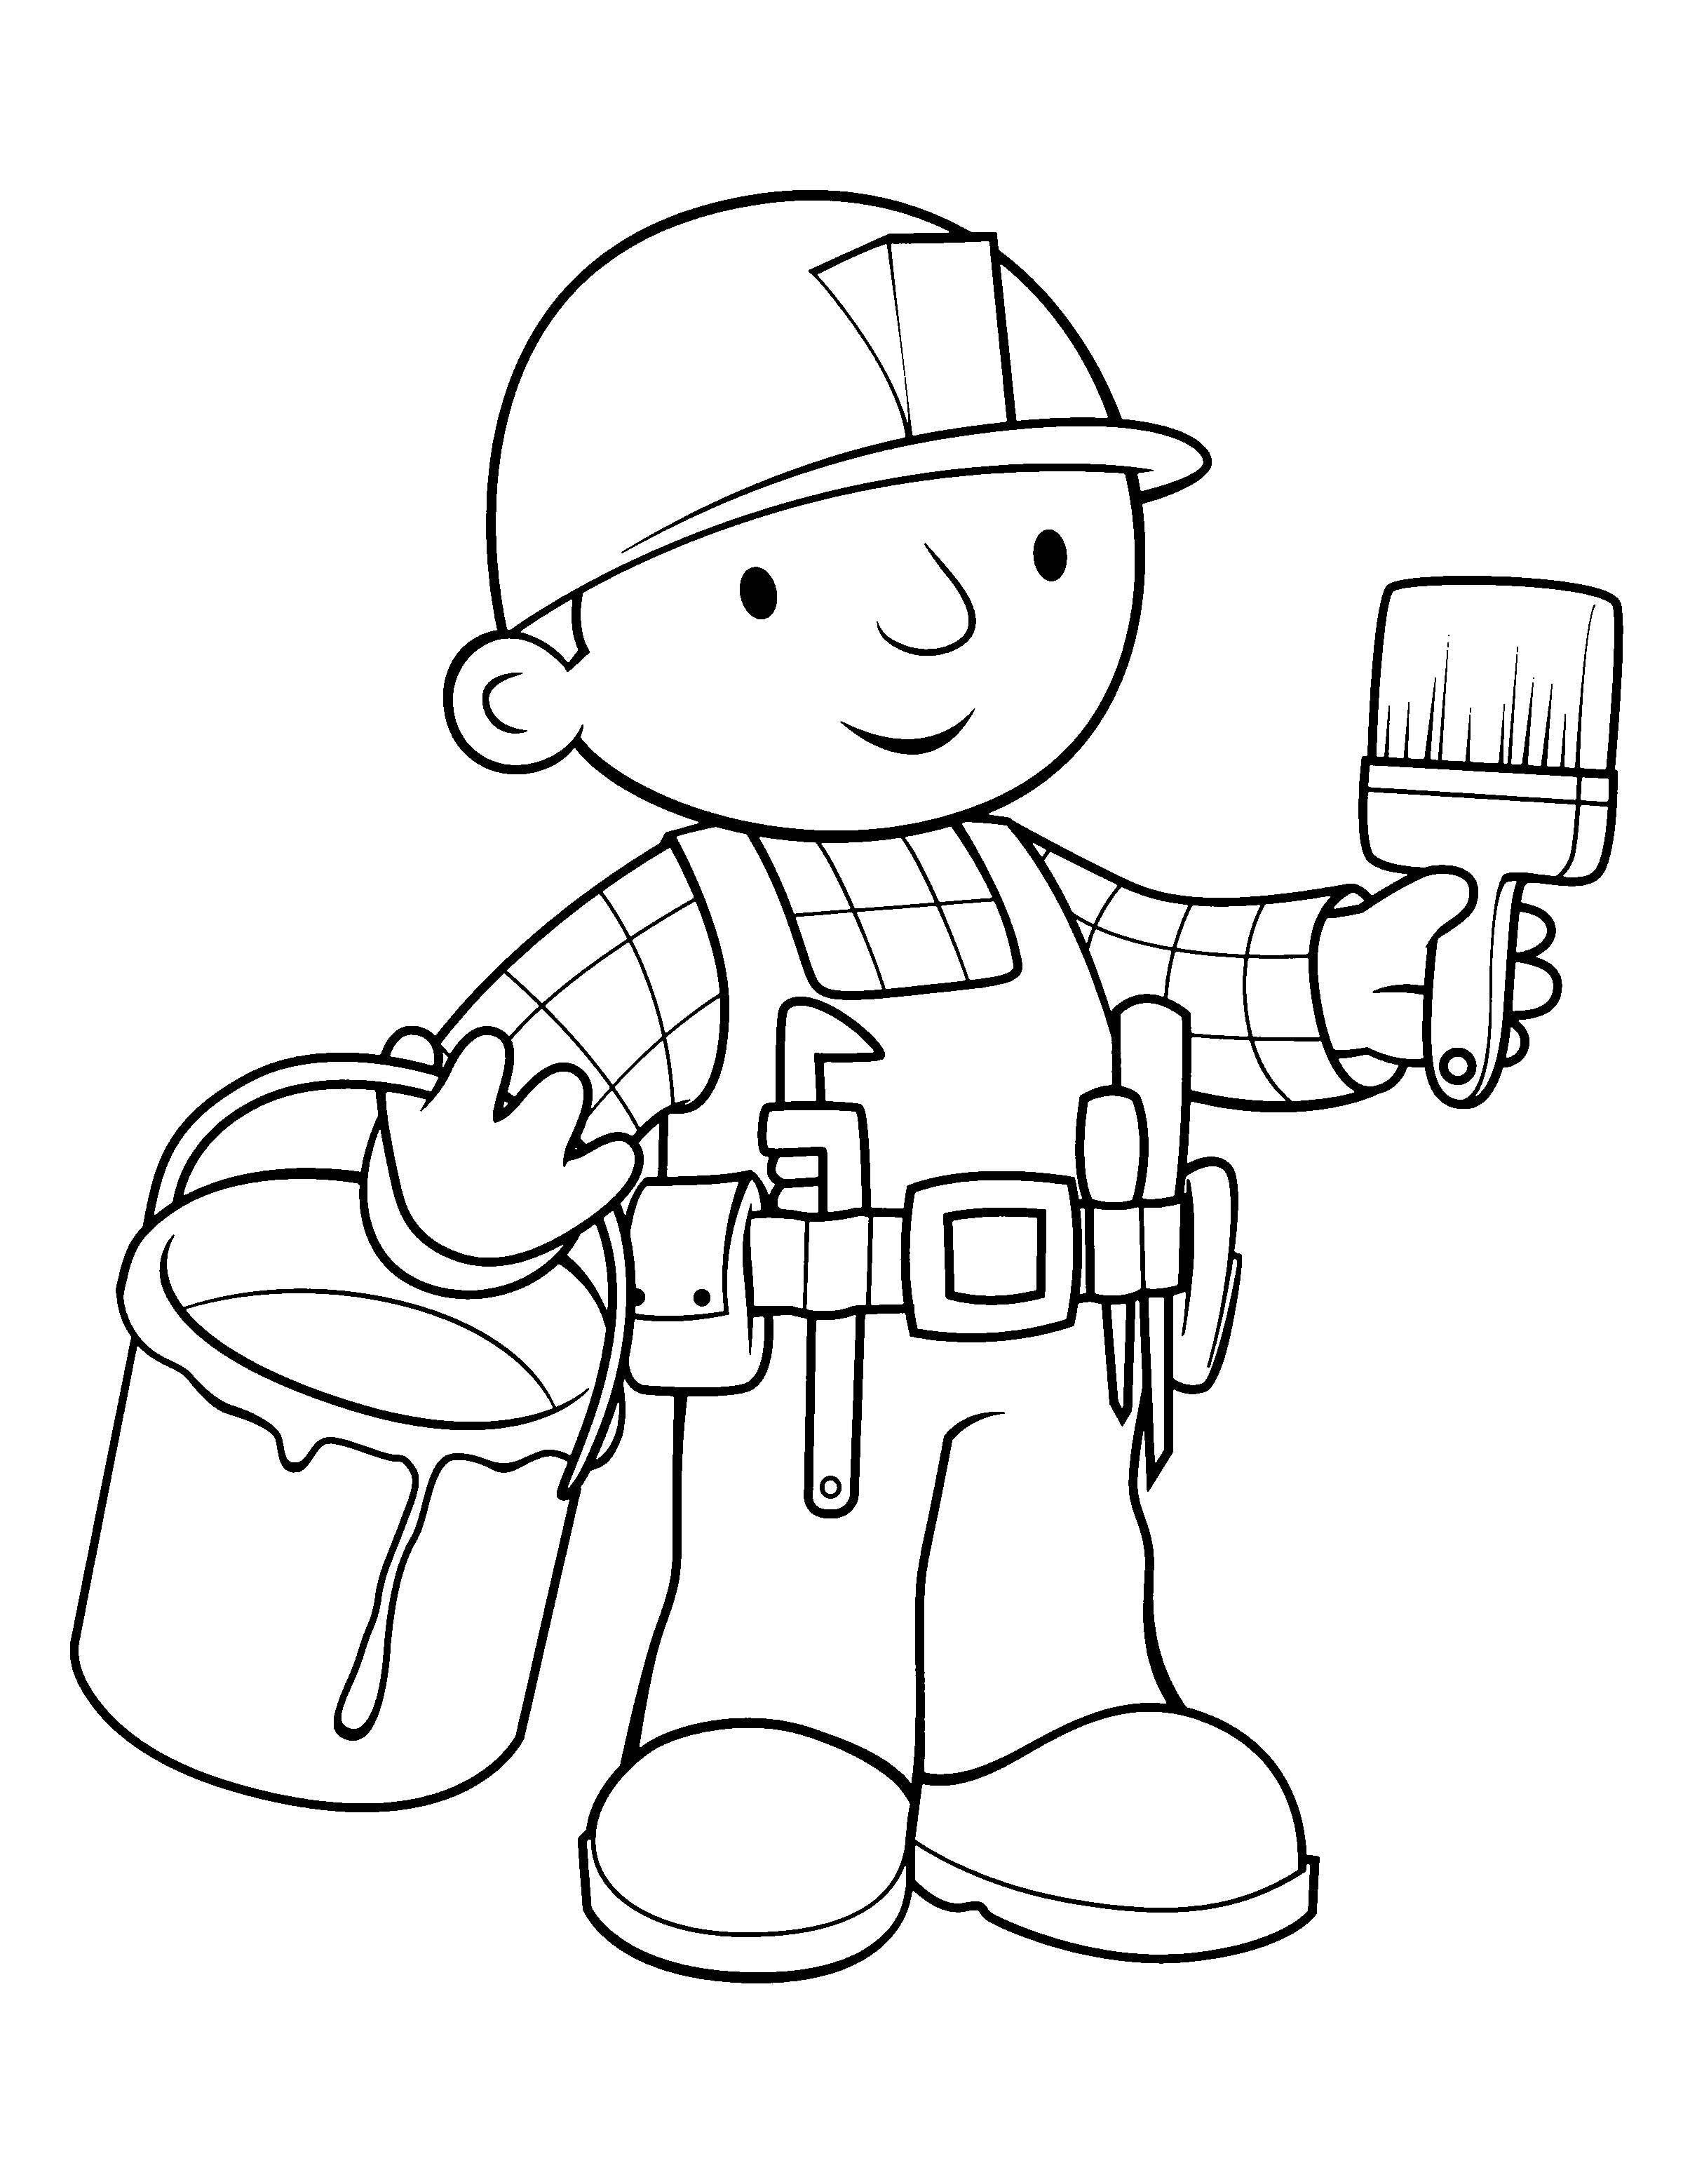 Bob The Builder And Paintbrish Coloring For Kids